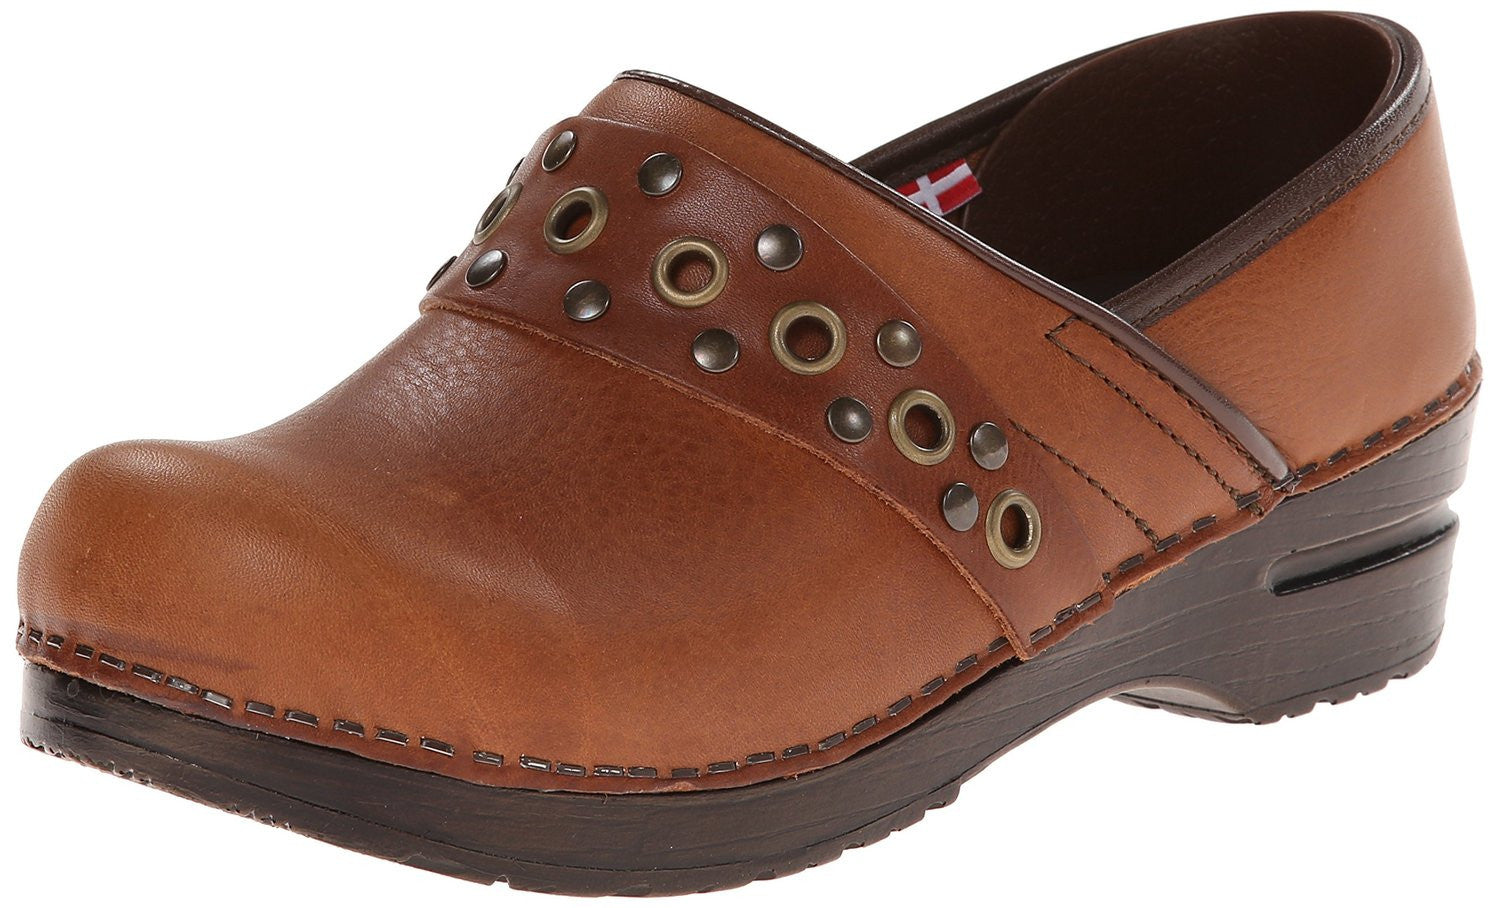 Sanita Women's Clog